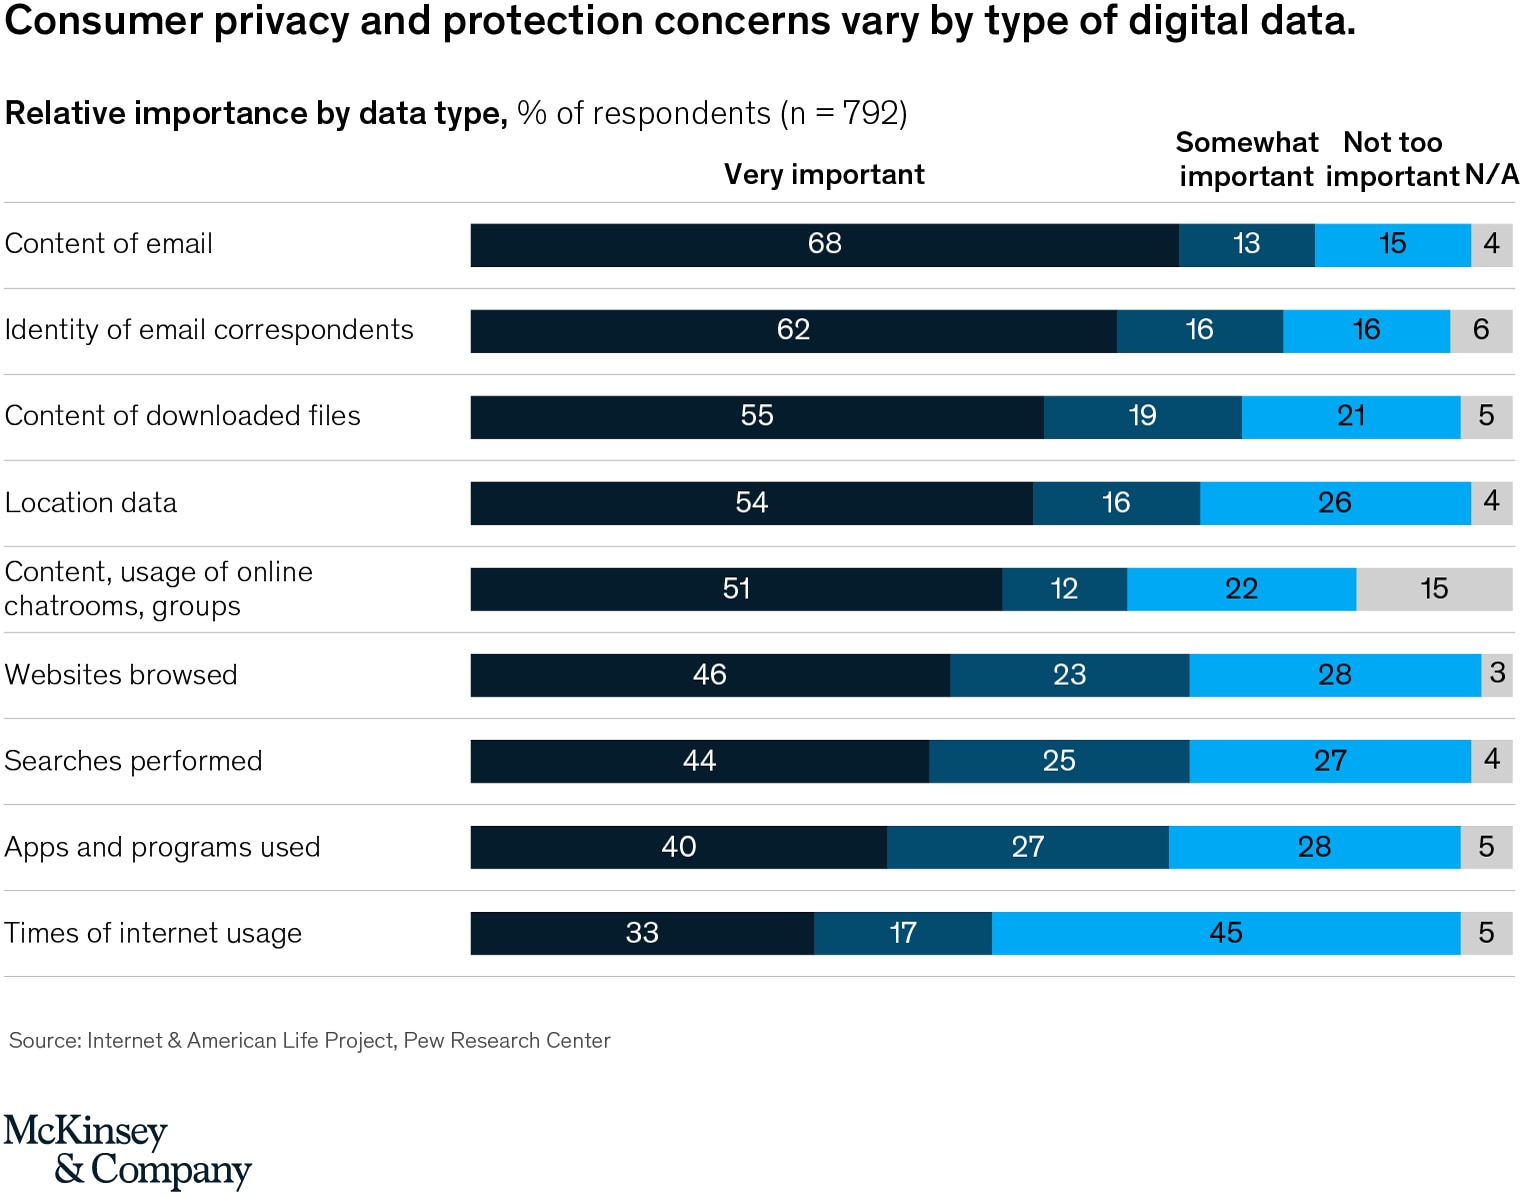 Mc.Kinsey & Company - Consumer Privacy and Protection Concerns by Type of Digital Data